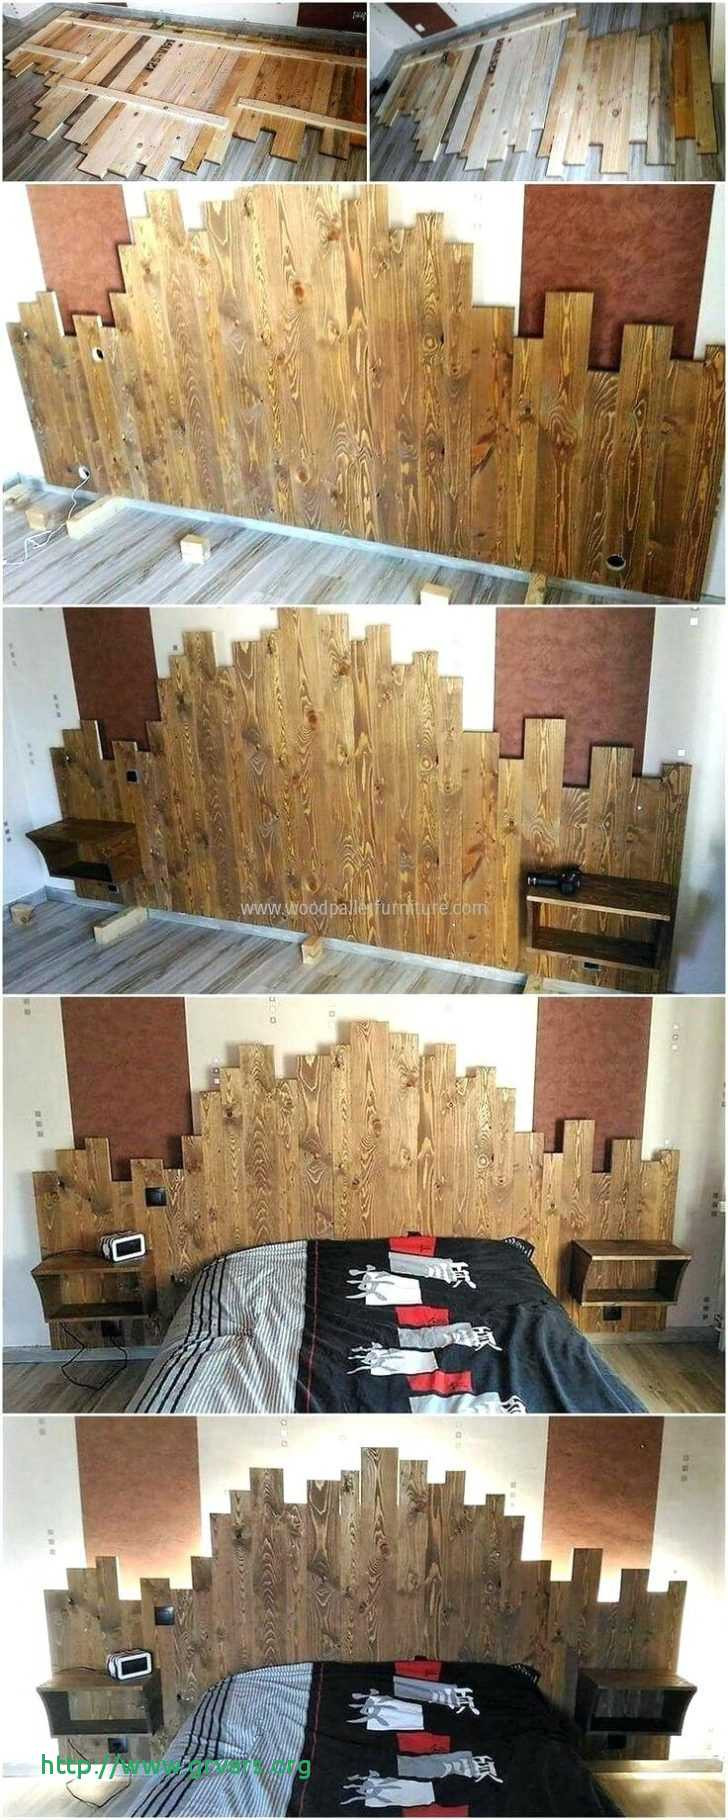 rustic hardwood flooring ideas of hardwood floors made from pallets inspirant headboard out pallets within hardwood floors made from pallets inspirant headboard out pallets best wood pallet headboards ideas rustic